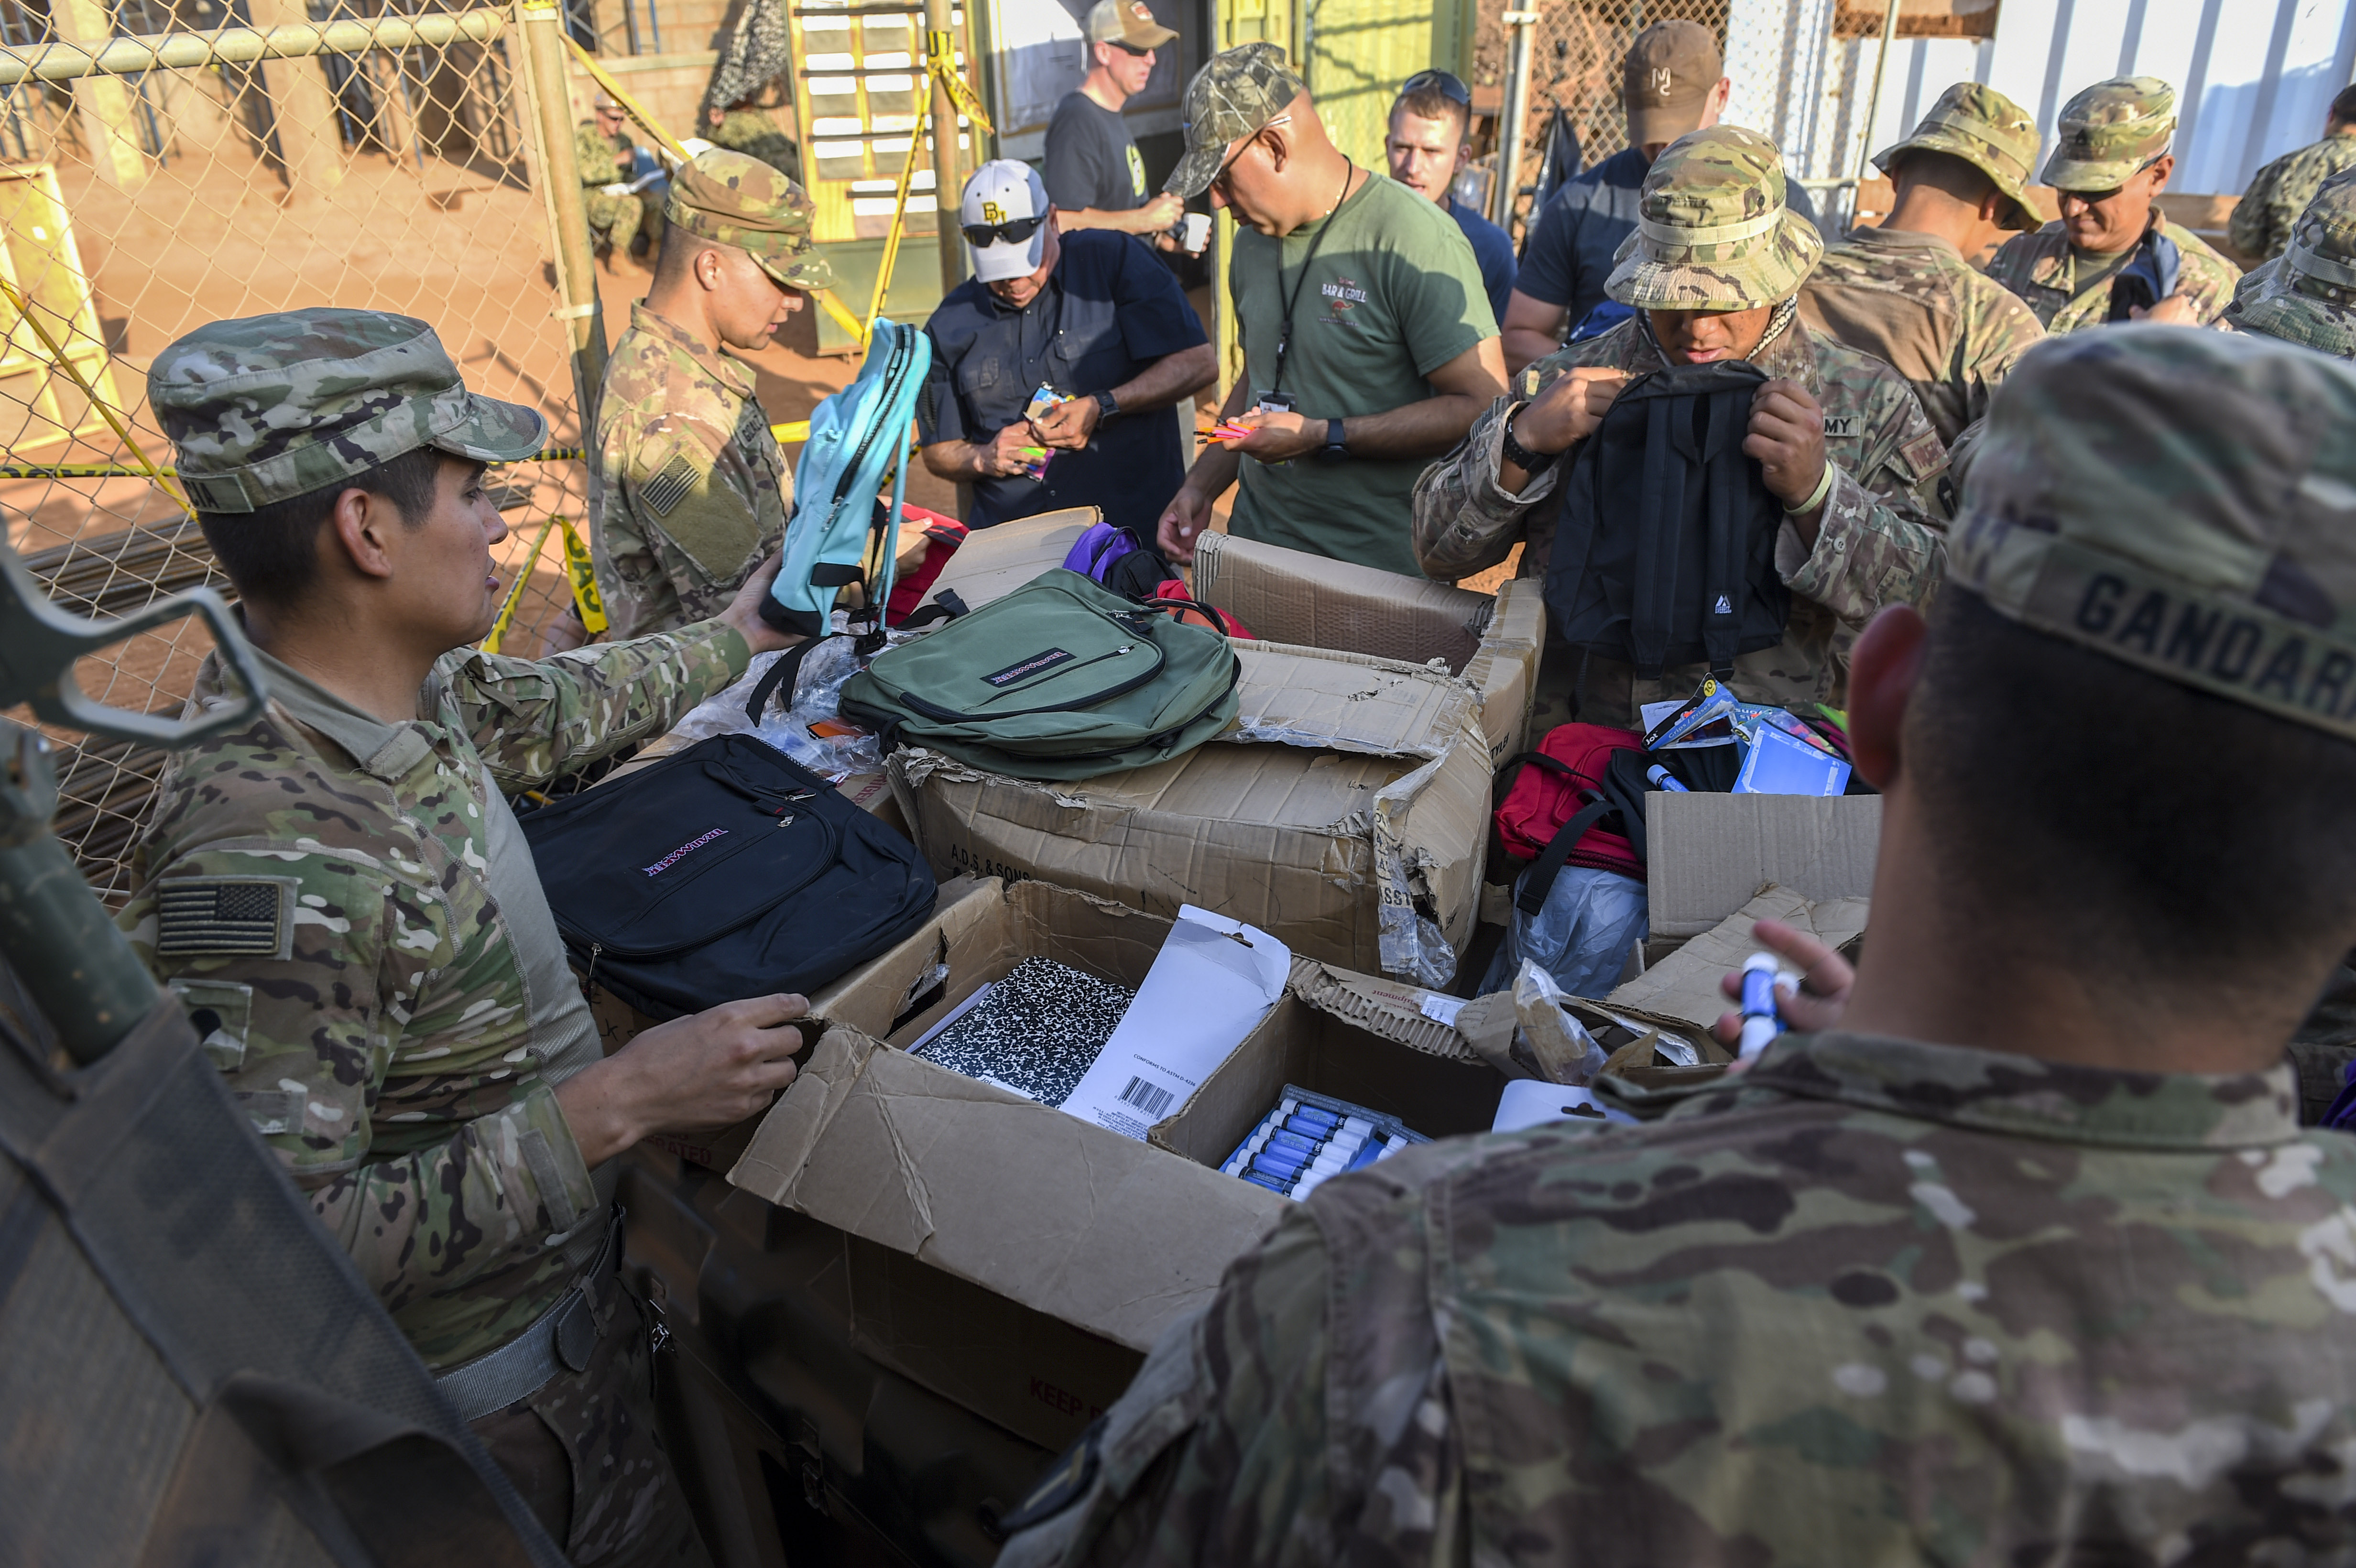 U.S. Army Soldiers with Animal Company, 3rd Battalion, 141st Infantry Regiment, assigned to Combined Joint Task Force - Horn of Africa (CJTF-HOA) put school supplies into backpacks to be given to Somali children in Ali Oune, Djibouti, March 28, 2018. CJTF-HOA service members donated more than $400 of school supplies and sandals to Somali refugees in Djibouti. (U.S. Air Force photo by Staff Sgt. Timothy Moore)